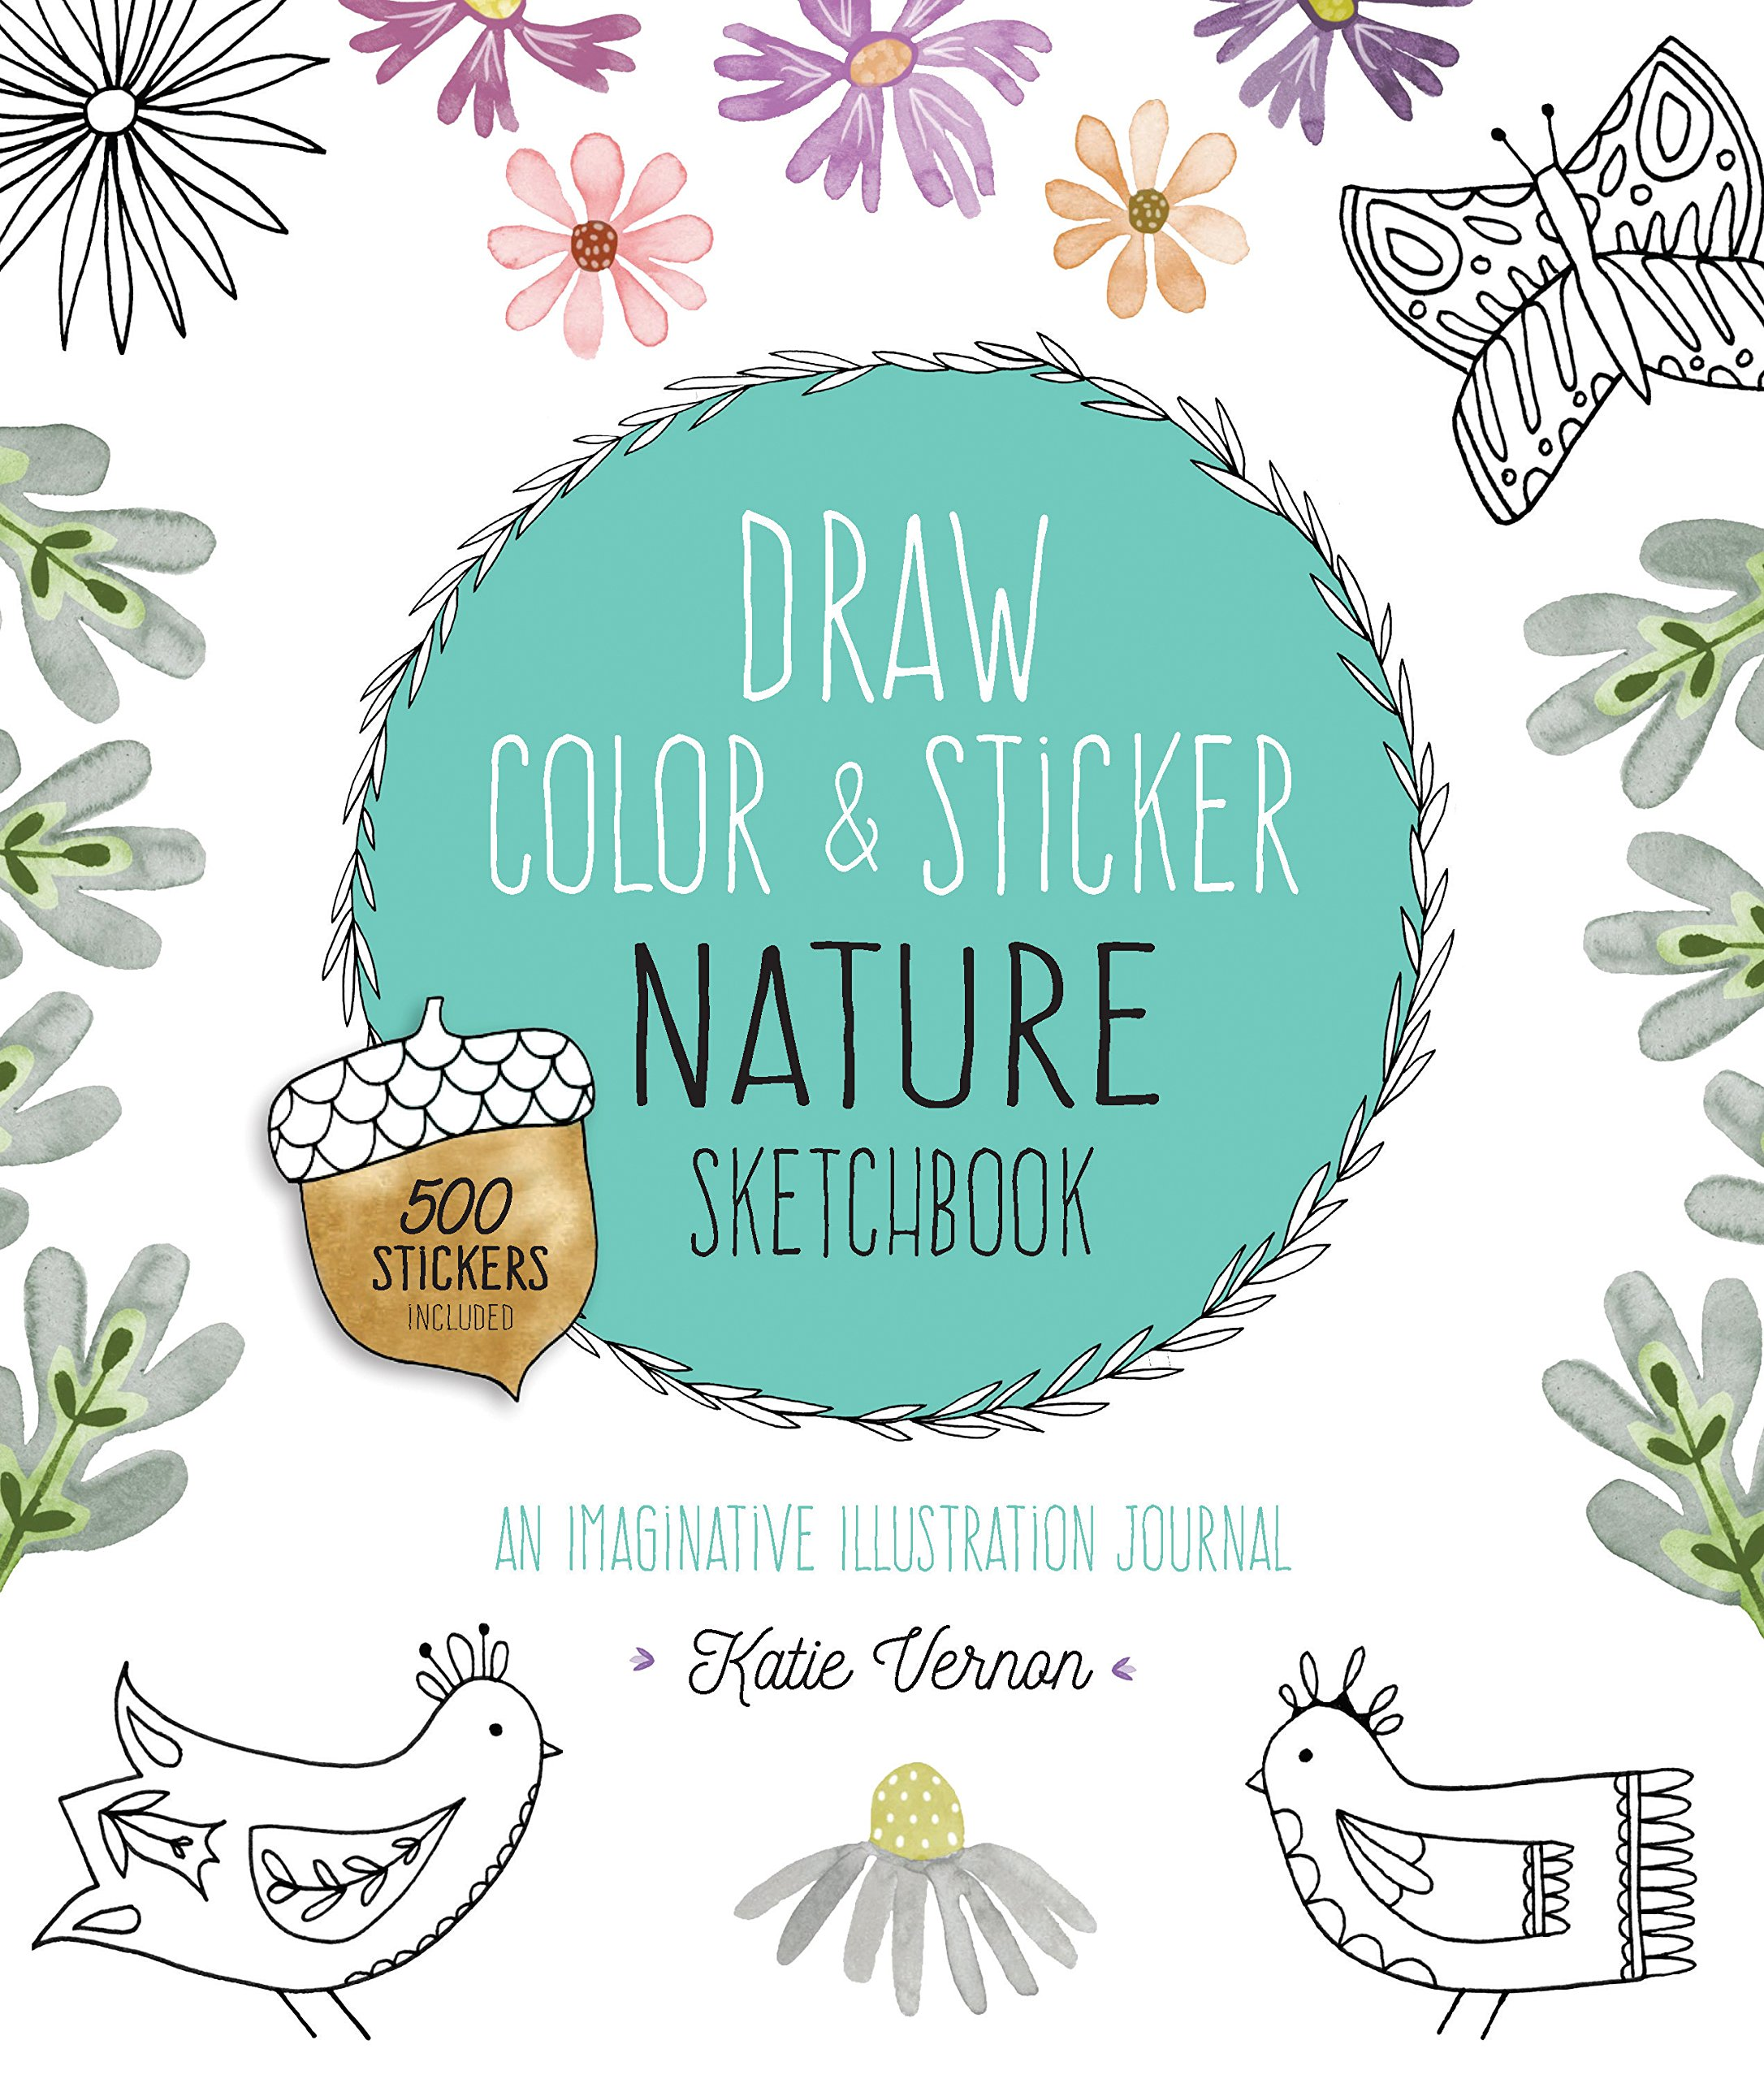 Color master inc in vernon - Amazon Com Draw Color And Sticker Nature Sketchbook An Imaginative Illustration Journal 9781631592782 Katie Vernon Books